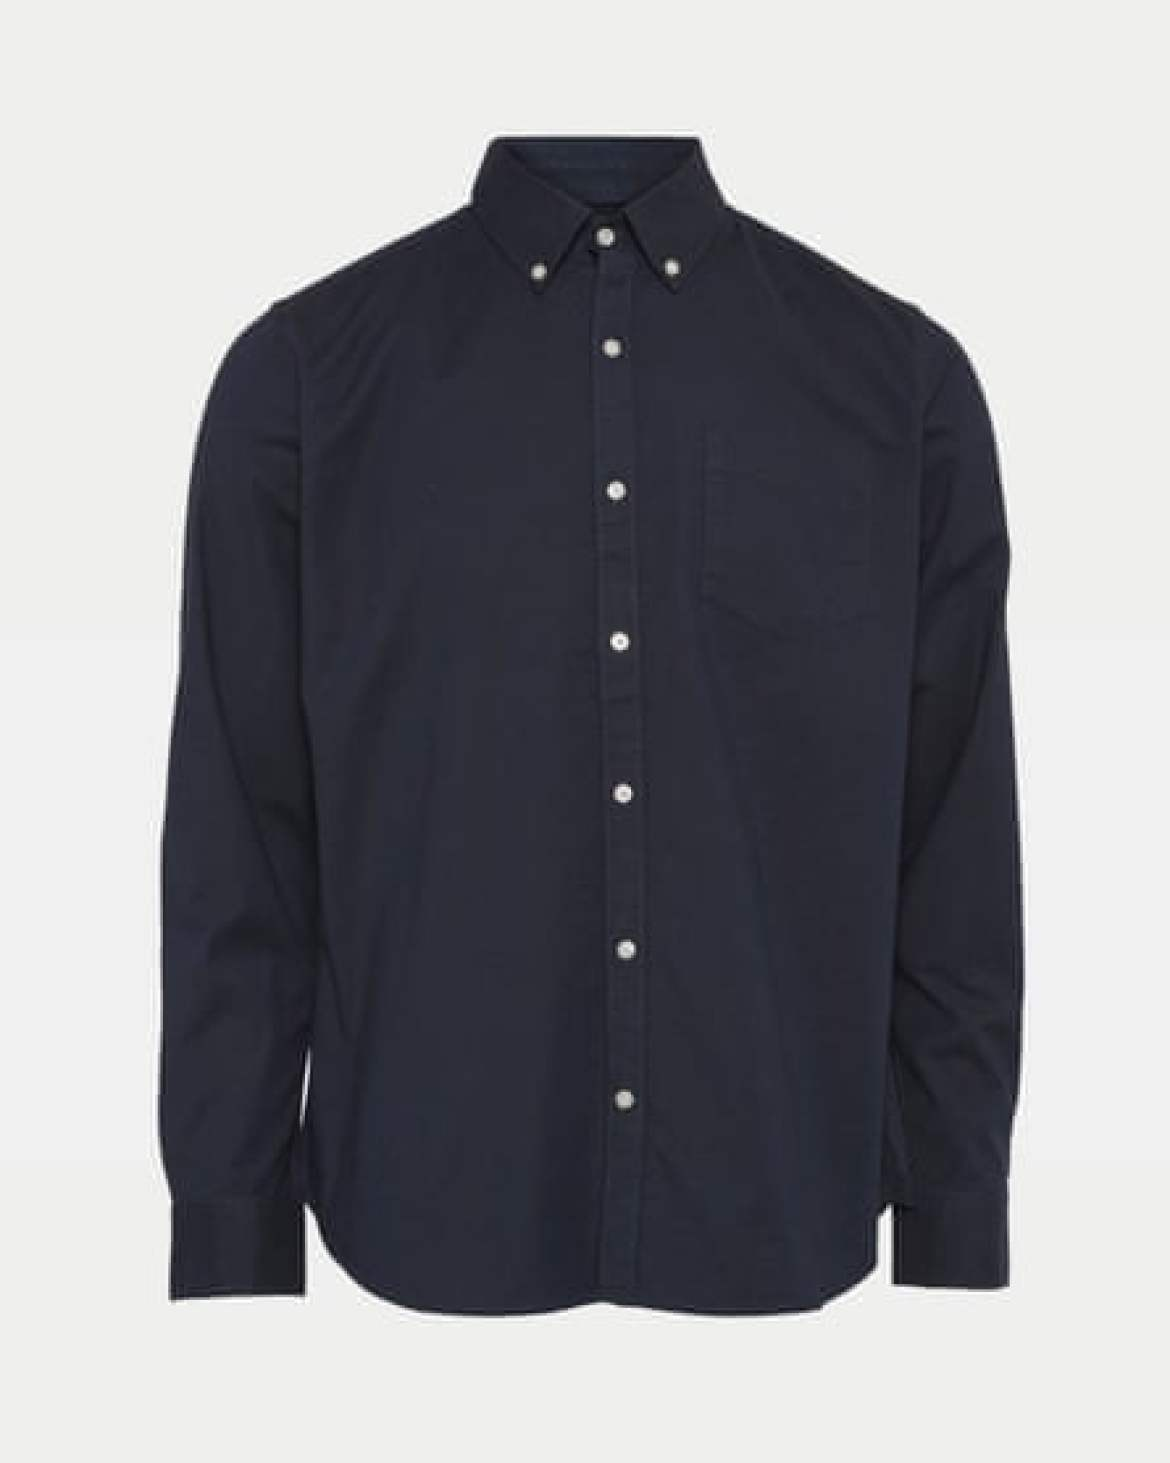 Oxford shirt from Found Hea